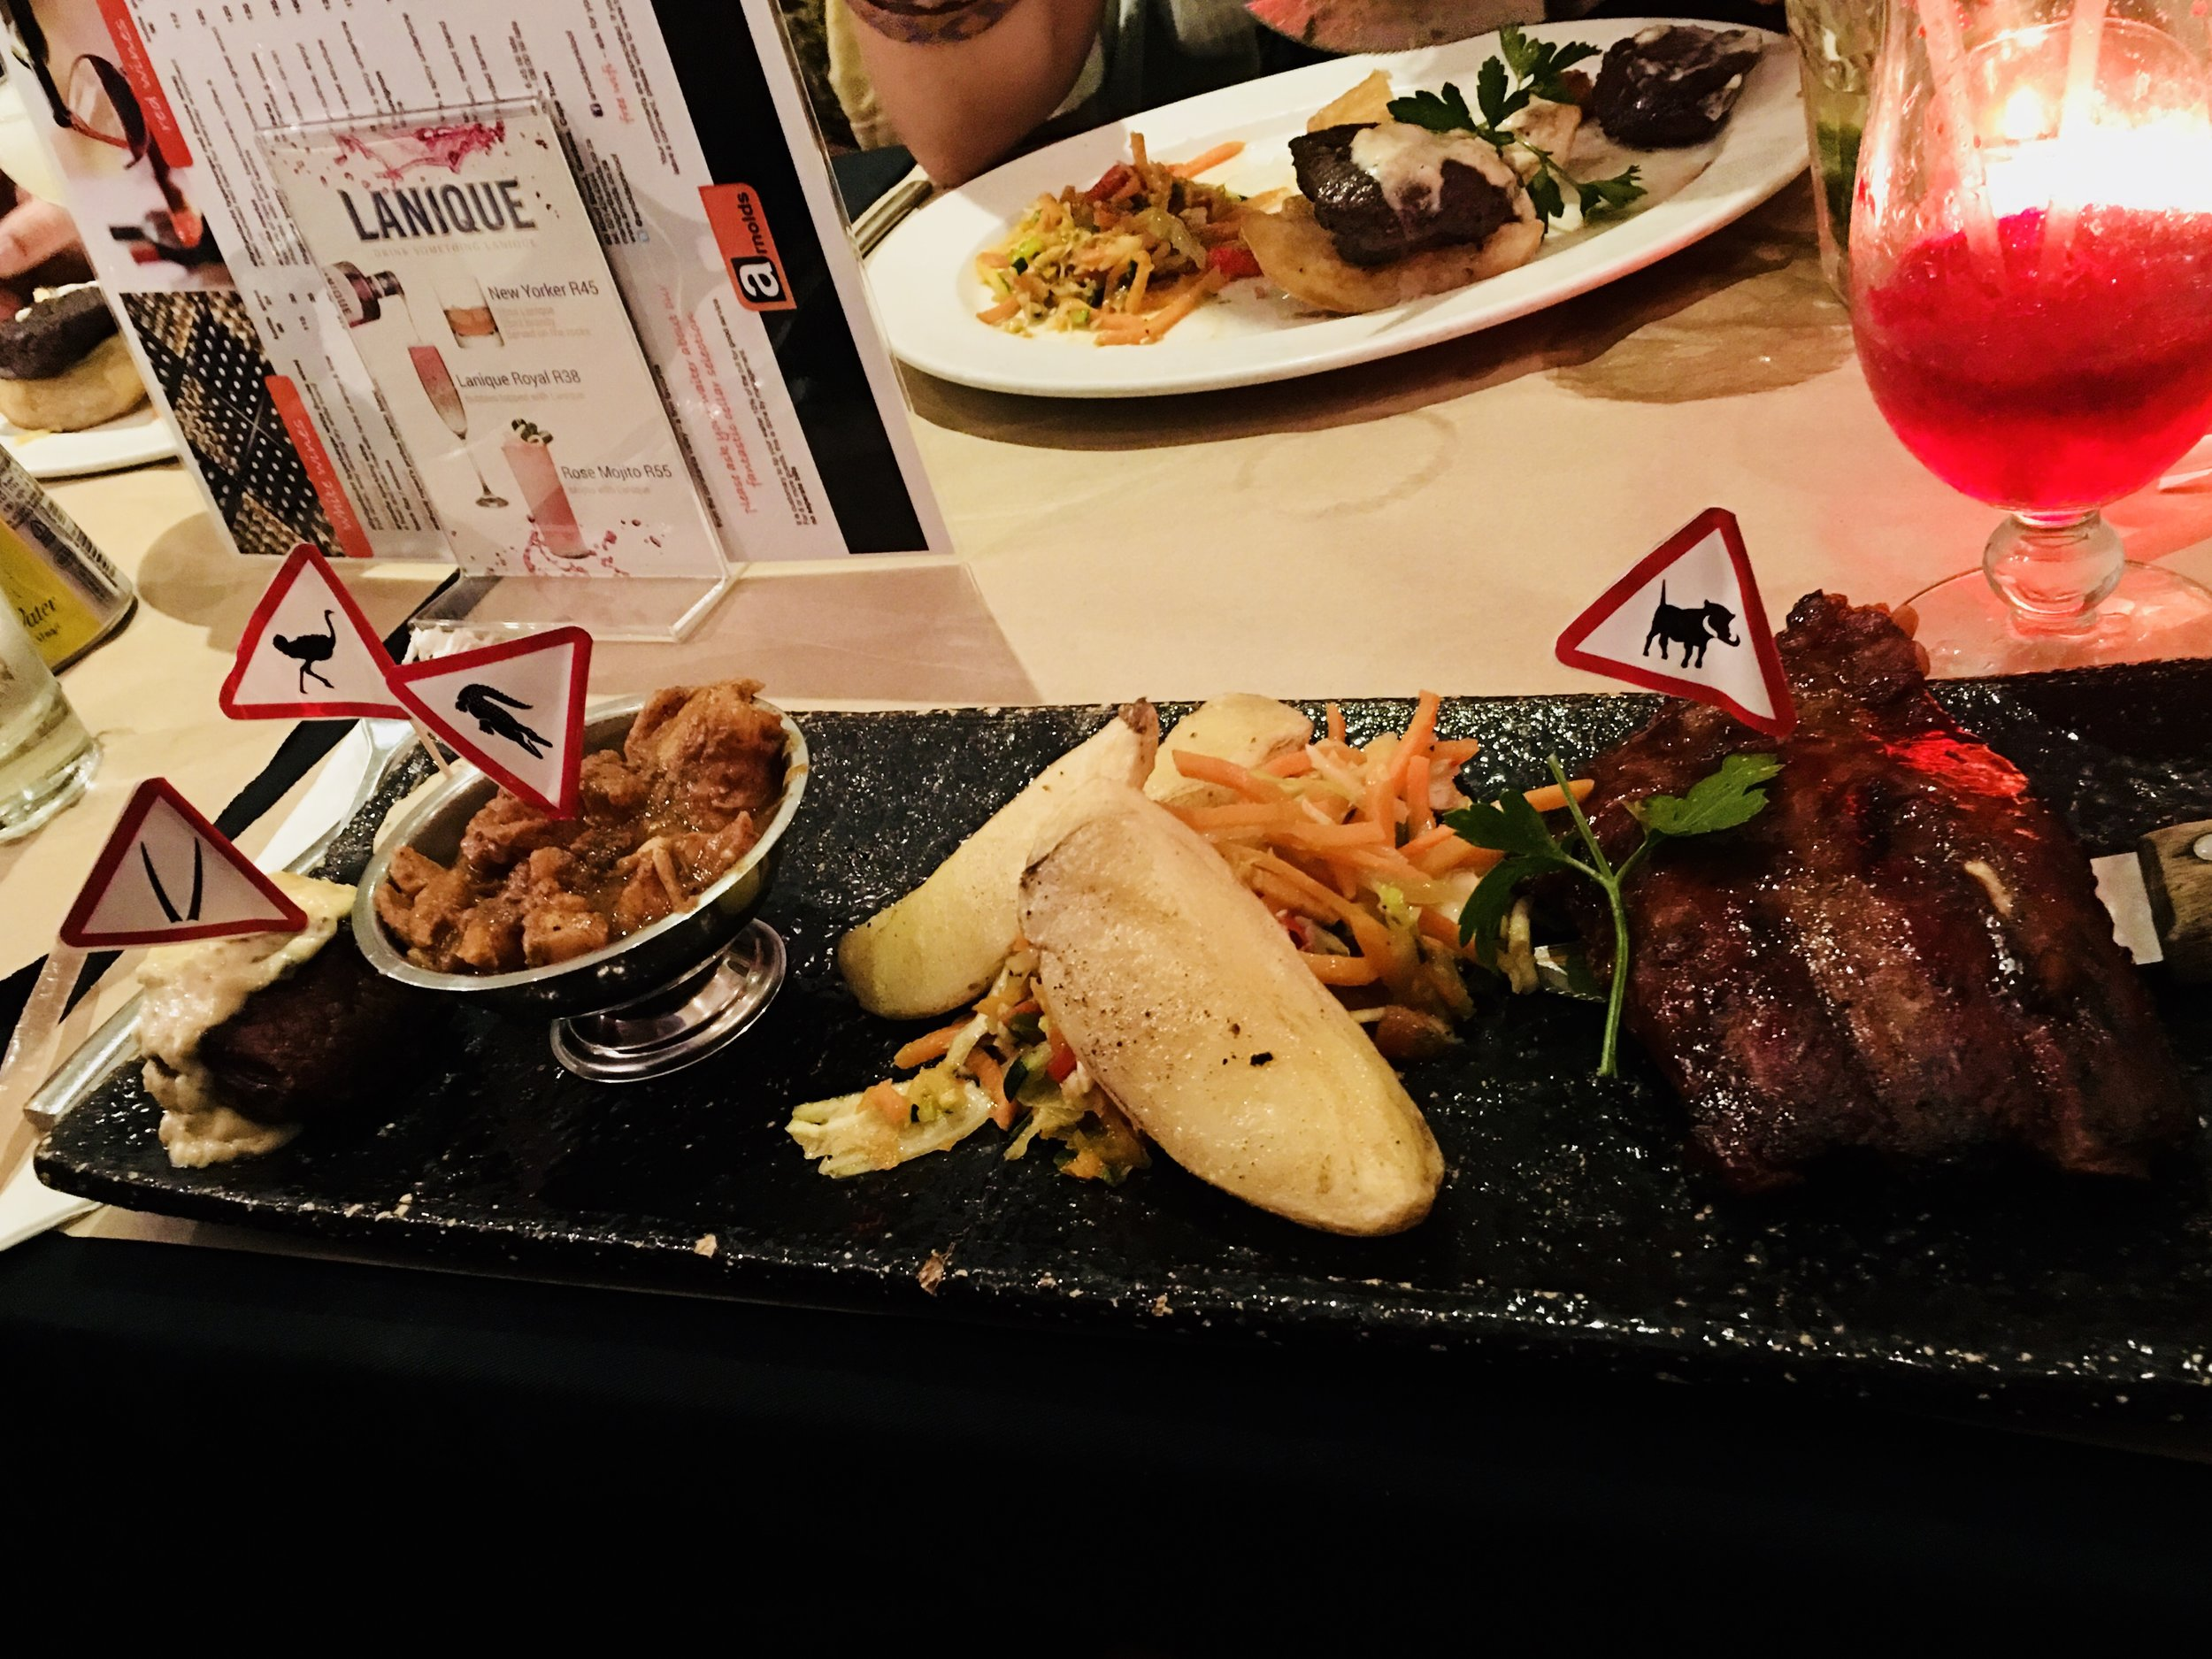 Did that menu really need to be there? Or that elbow? This dinner in South Africa was delicious though!